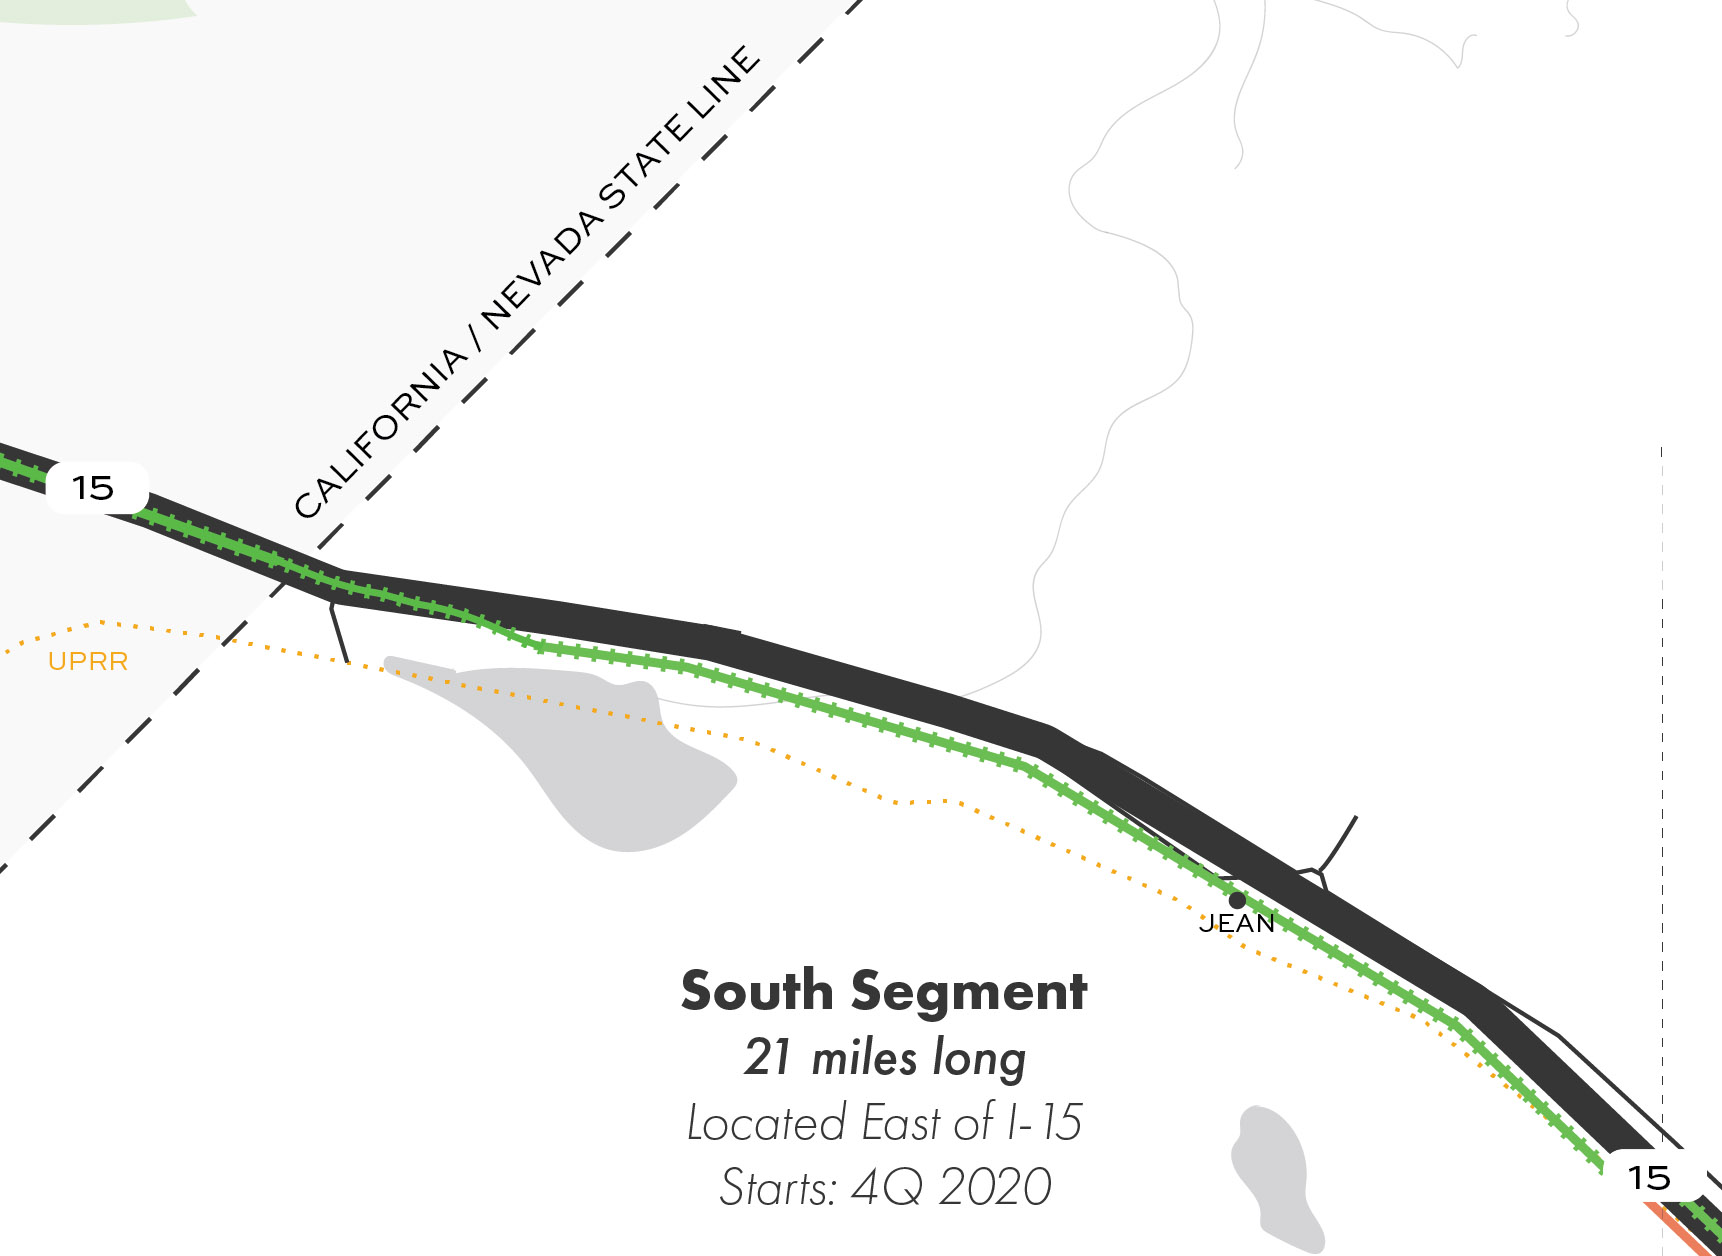 Map showing the Nevada South Segment of the proposed route.